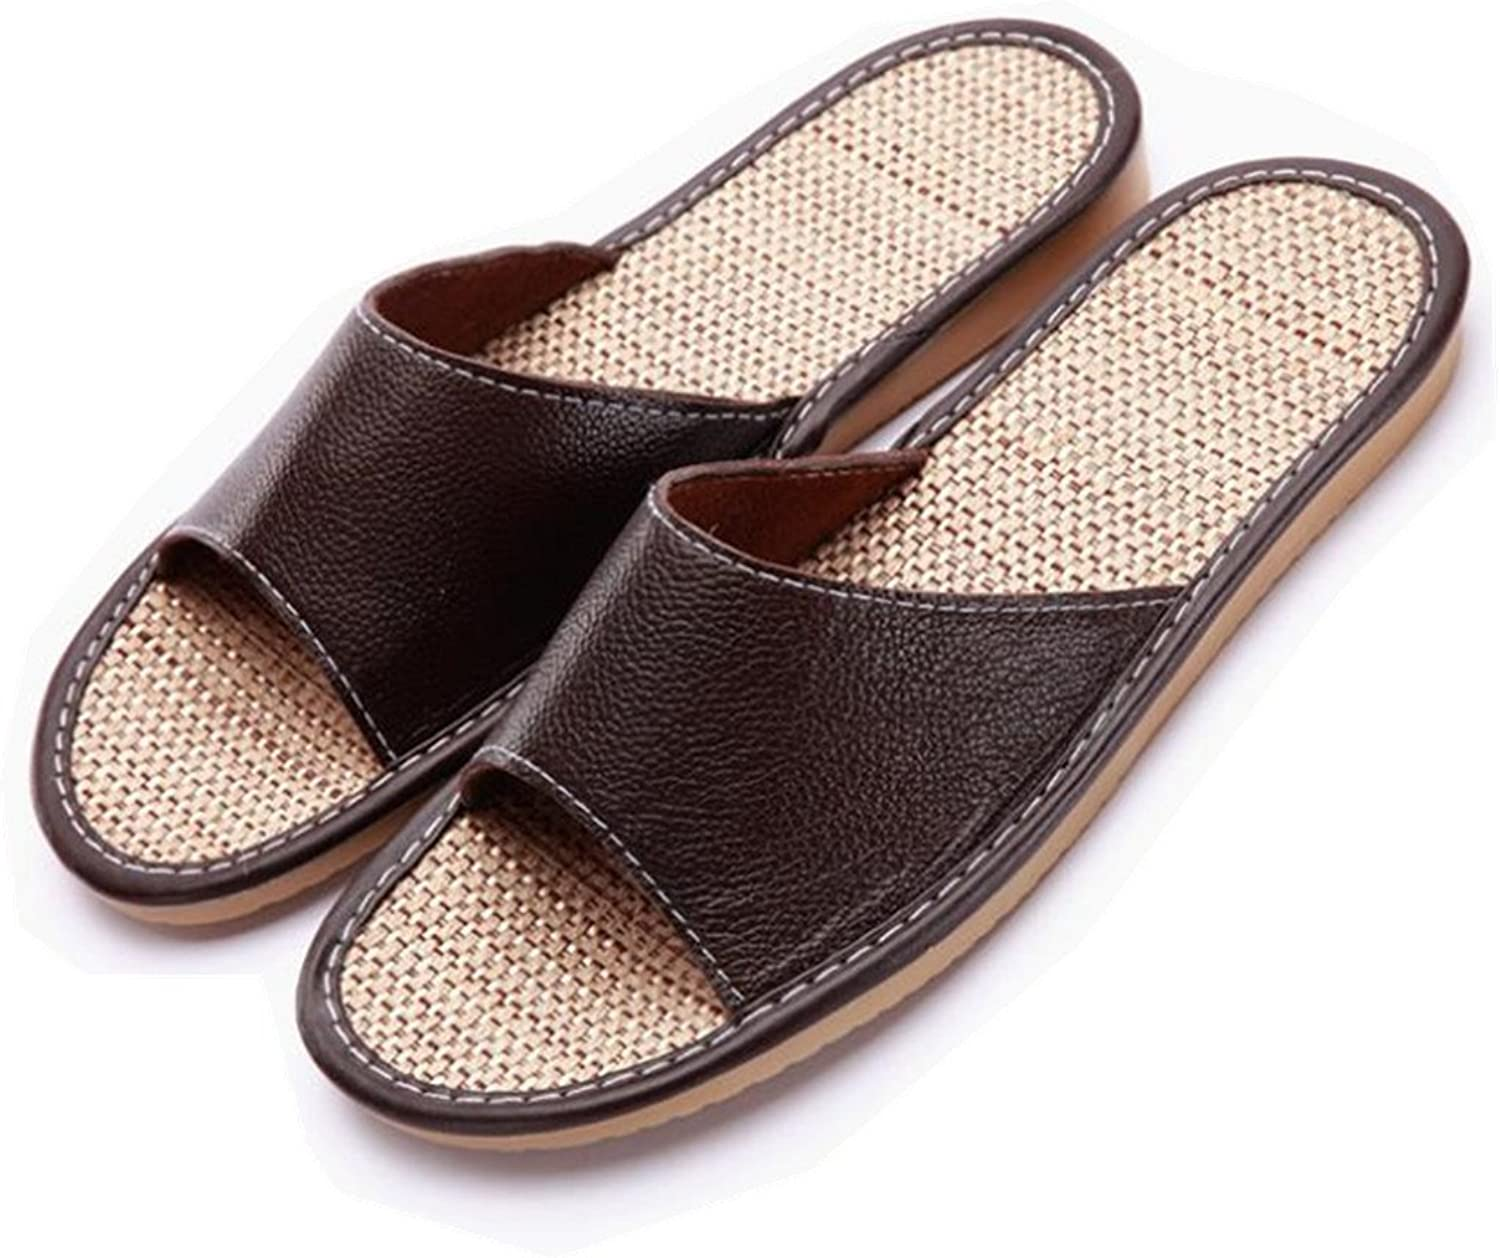 SAMSAY Unisex Genuine Leather Flax House Slippers Indoor Home Sandals Flat shoes